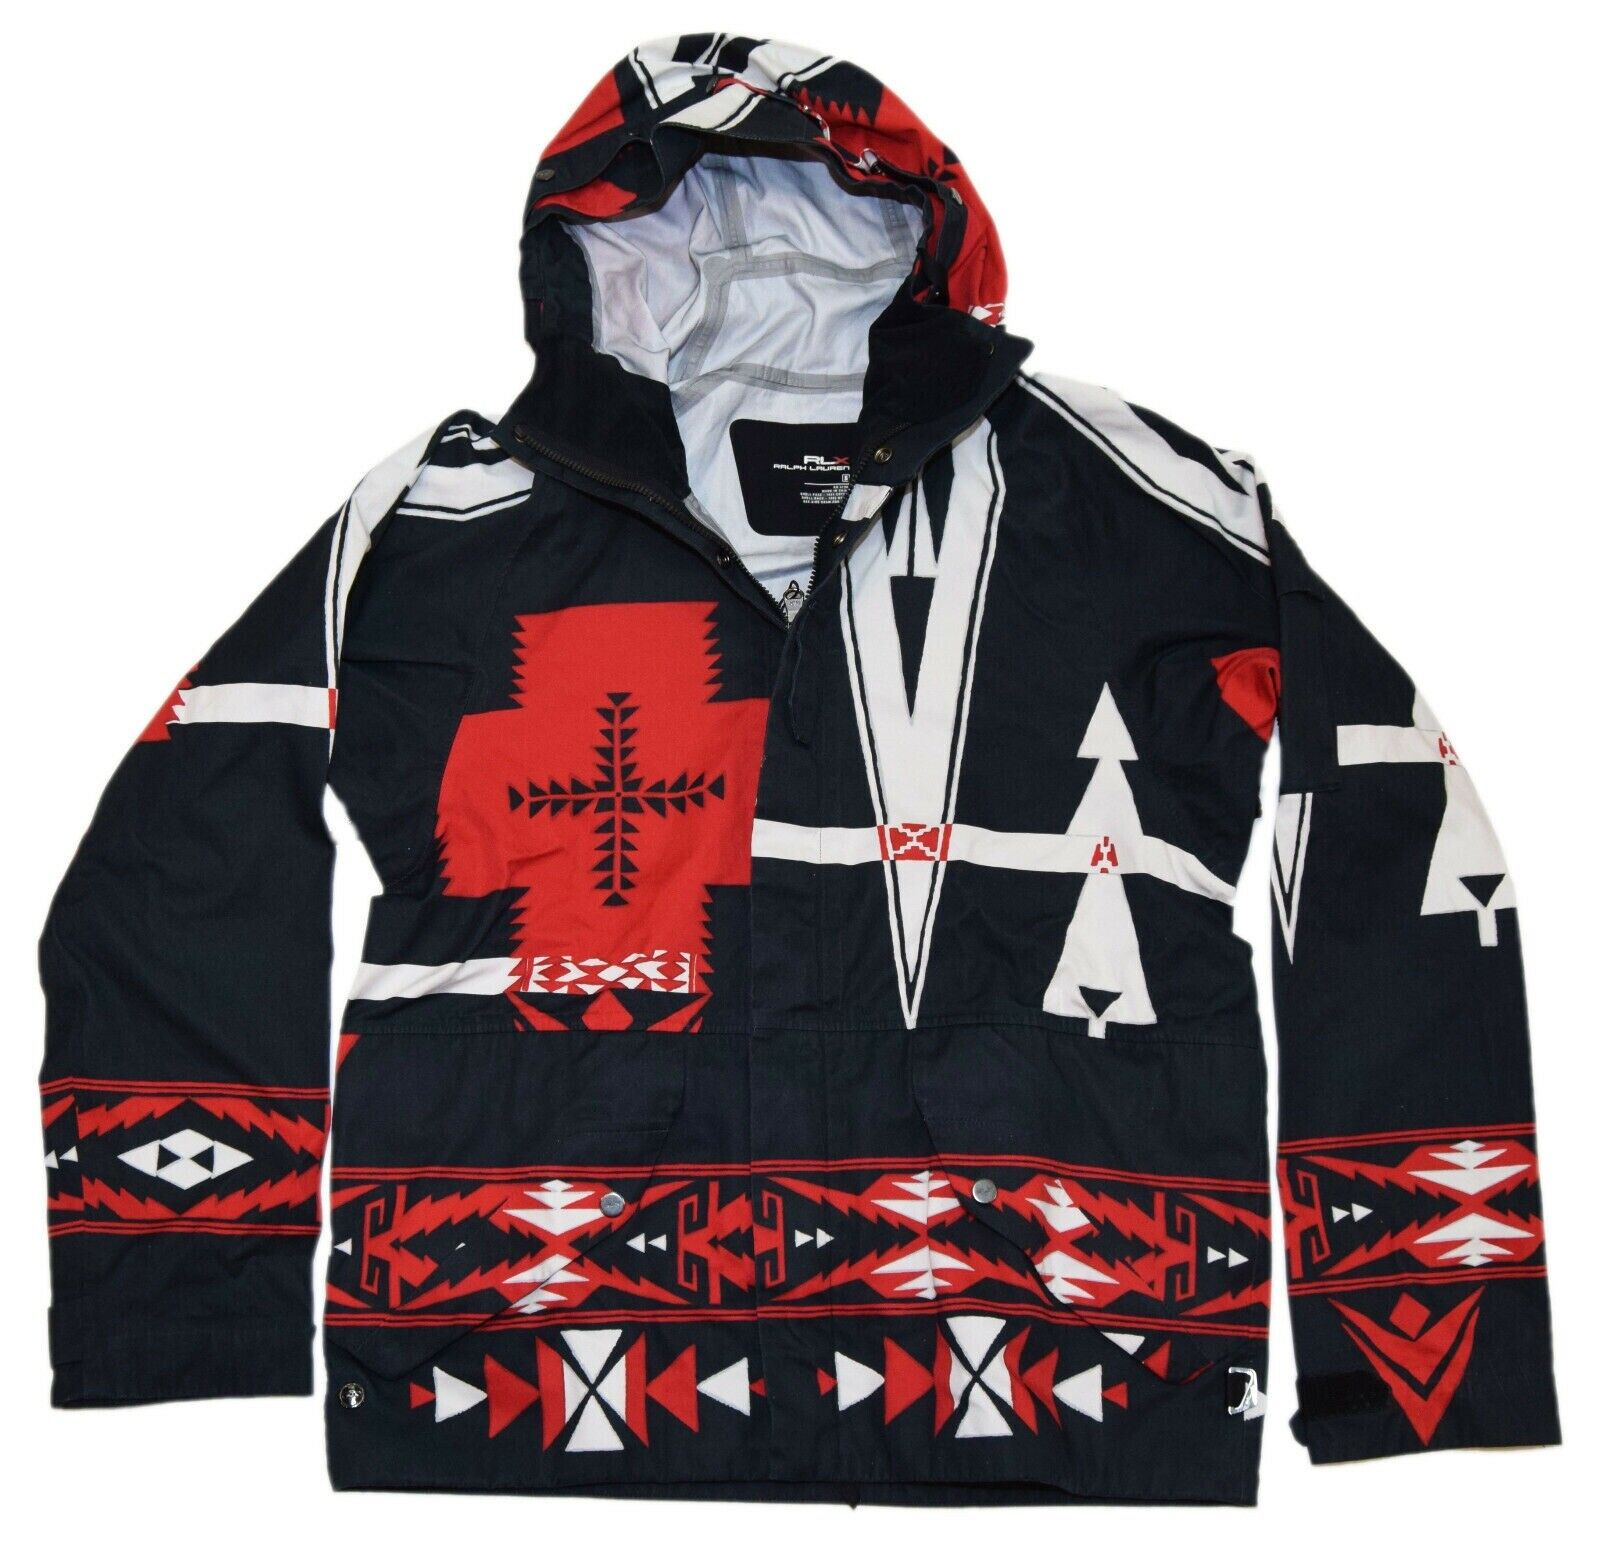 1495-polo-ralph-lauren-rlx-mens-aztec-nordic-hooded-jacket-black-red-small